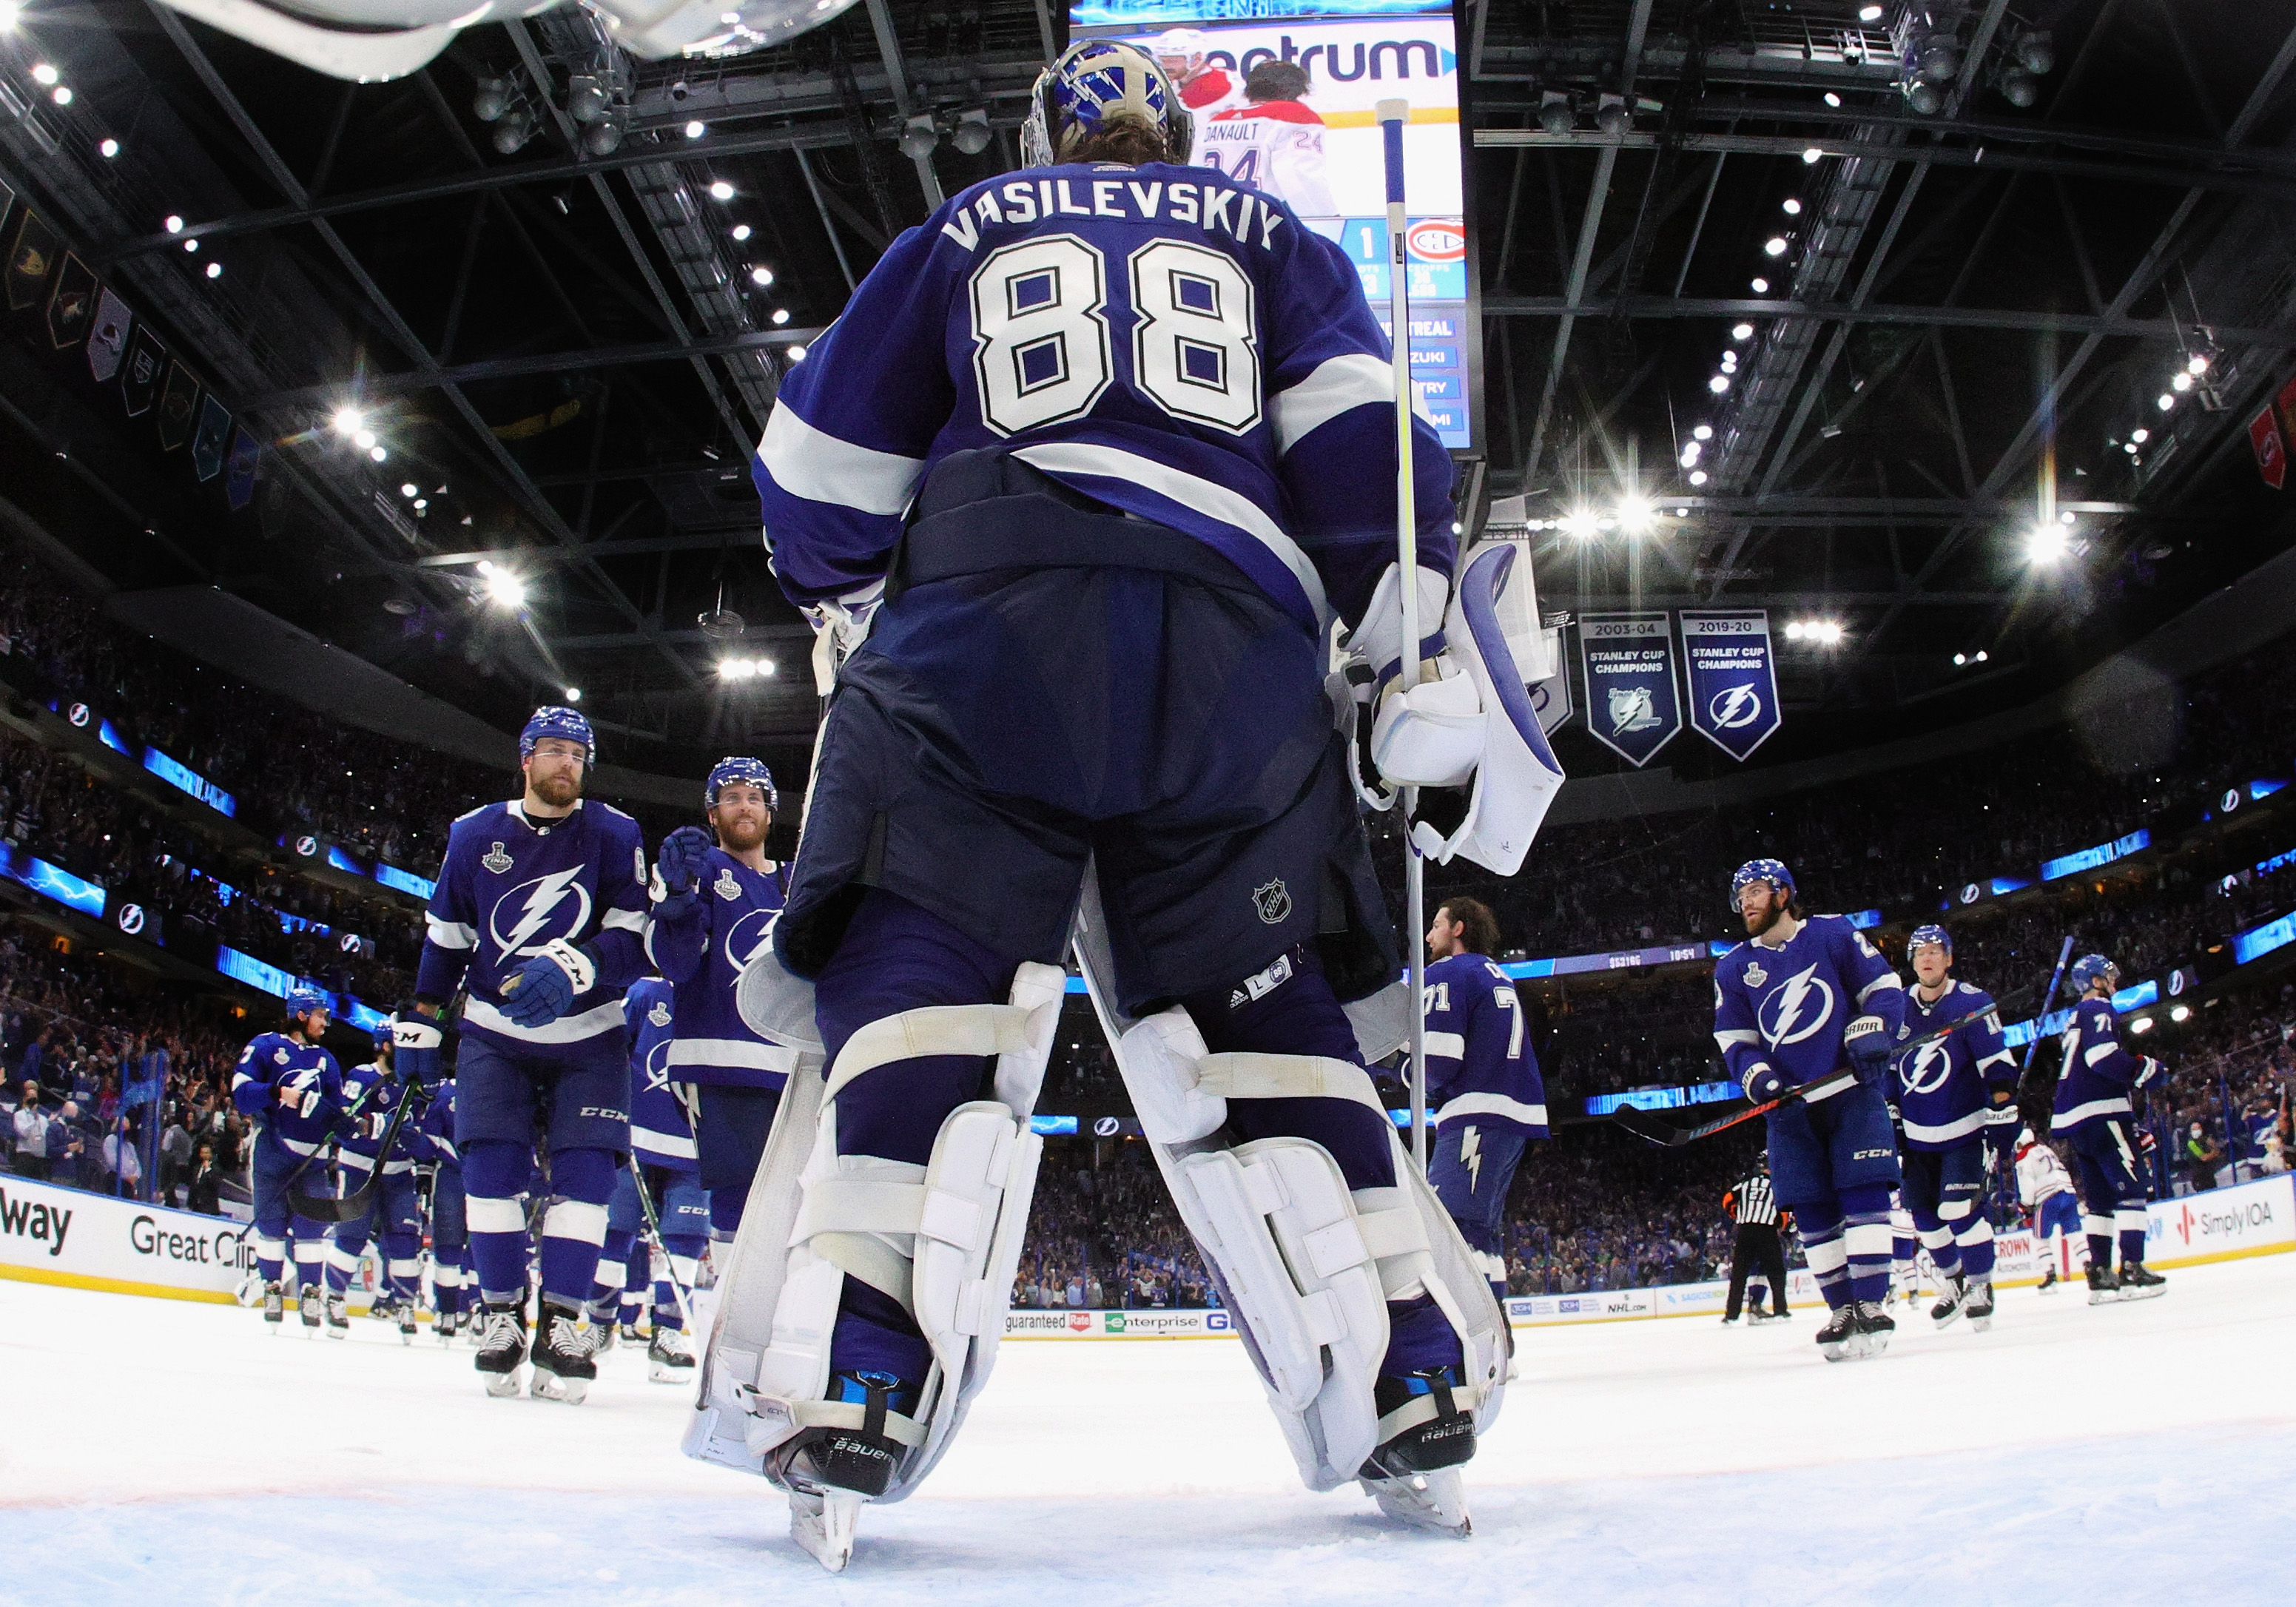 Andrei Vasilevskiy and the Tampa Bay Lightning celebrate their victory over the Montreal Canadiens in Game Two of the 2021 NHL Stanley Cup Final at the Amalie Arena on June 30, 2021 in Tampa, Florida.